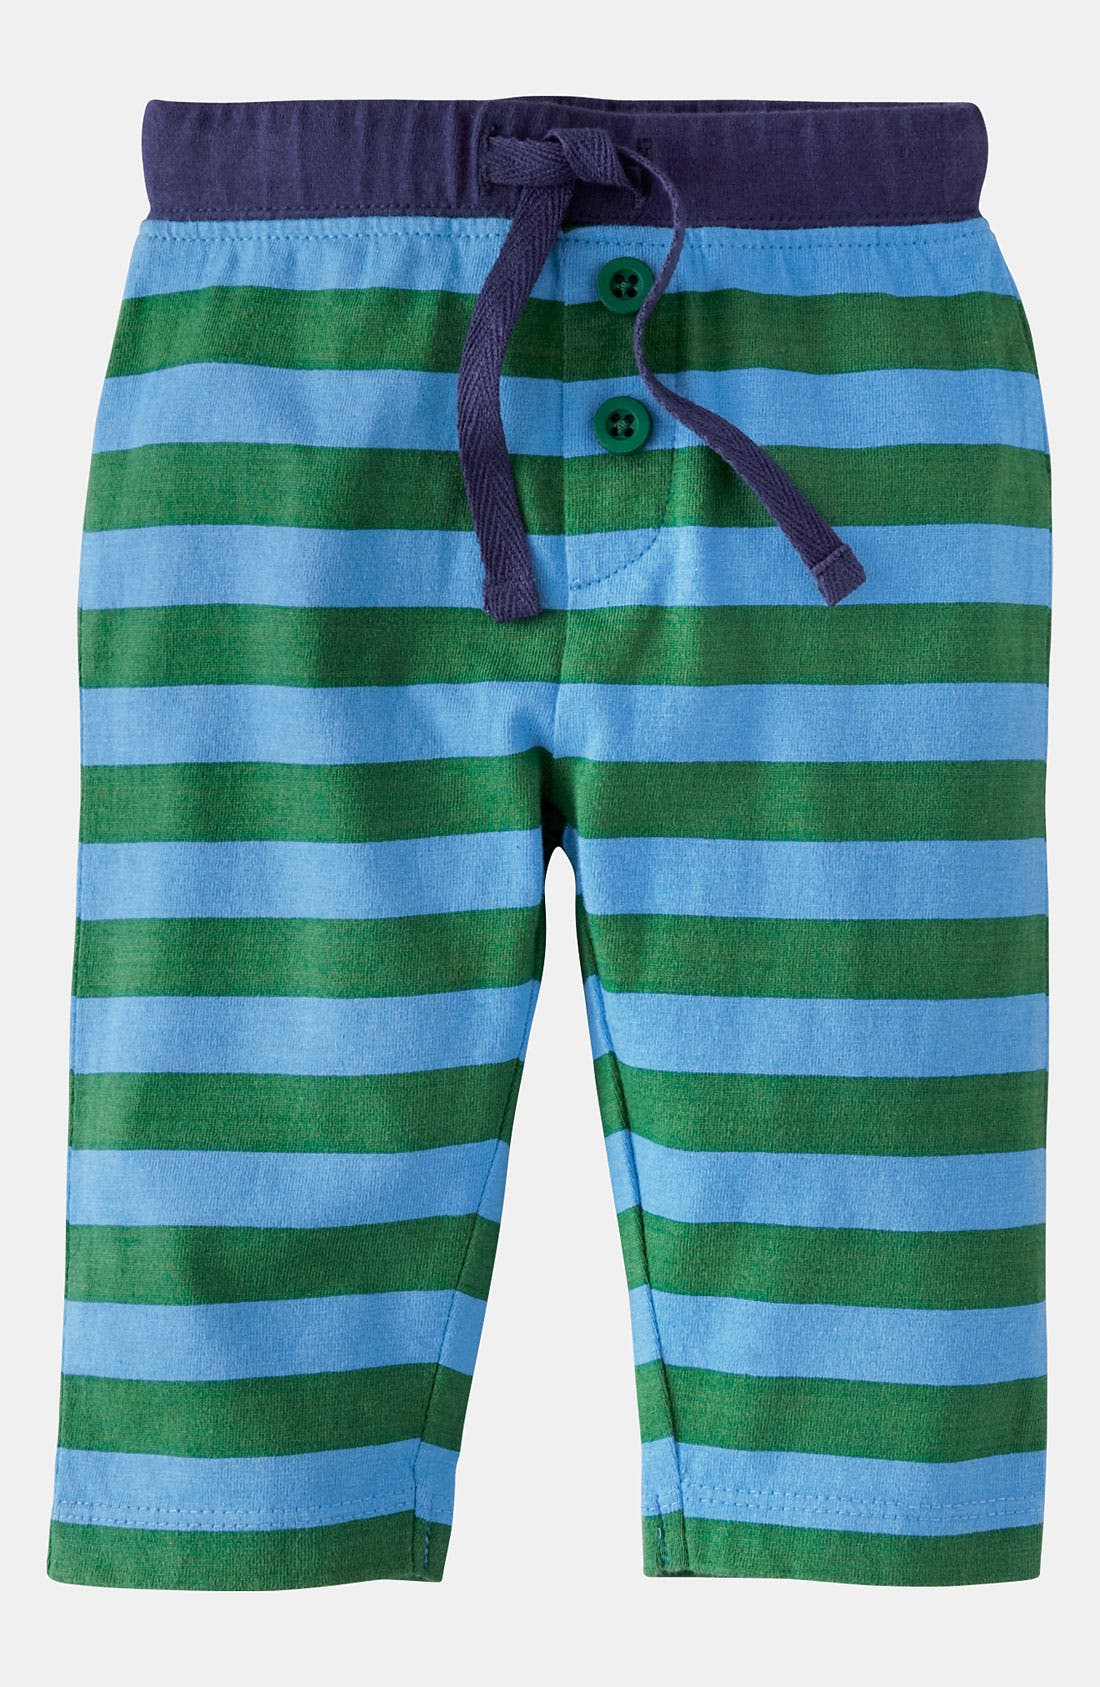 Main Image - Mini Boden 'Stripy' Jersey Pants (Baby)